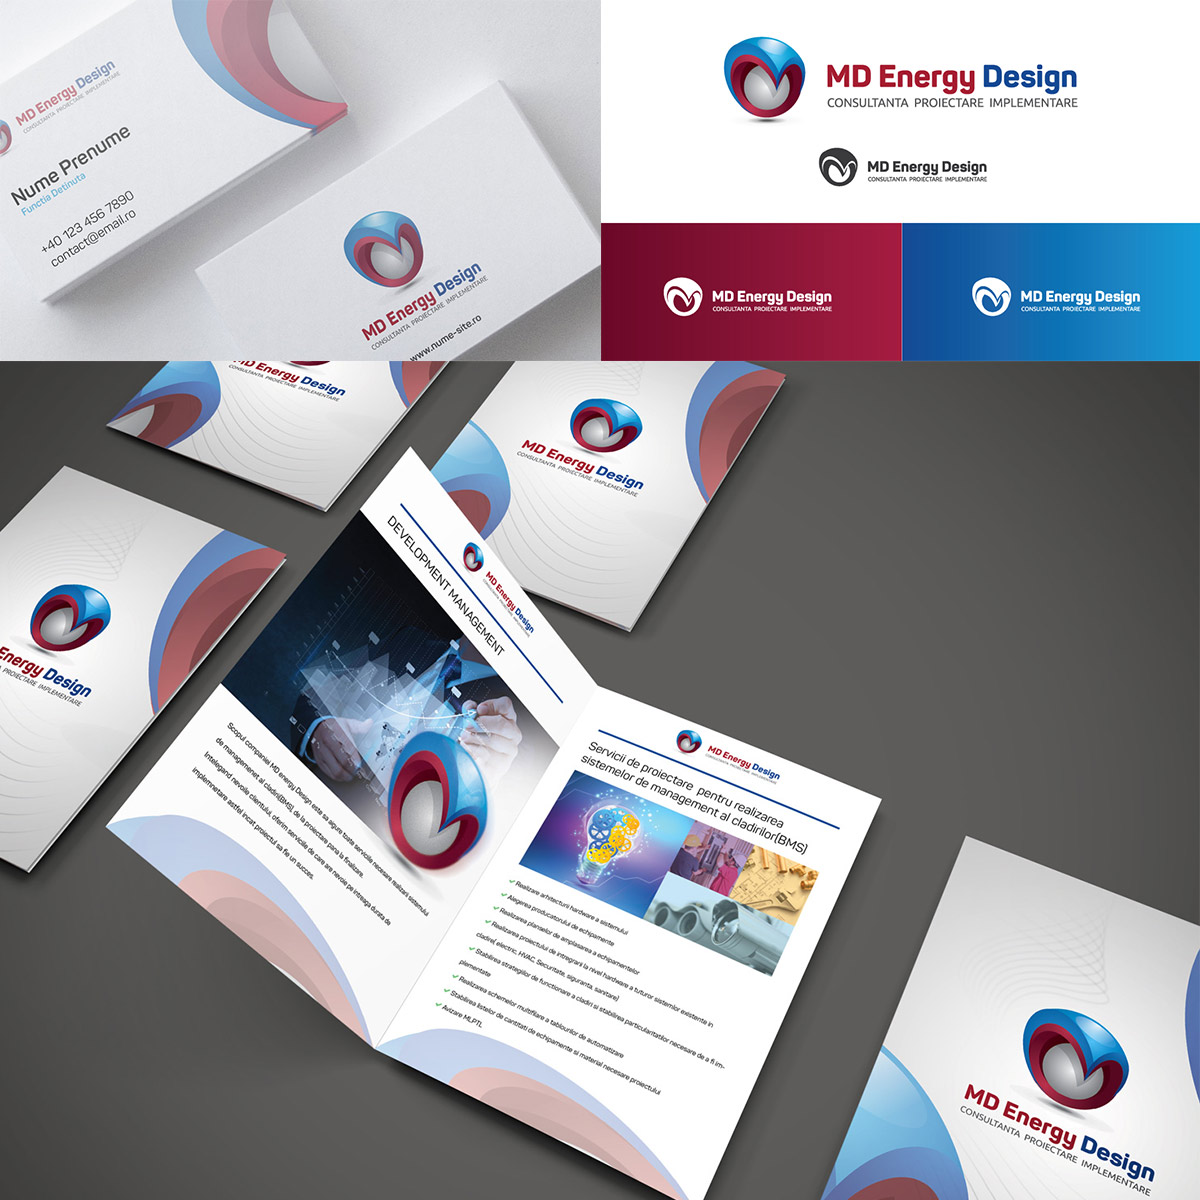 MD Energy Design